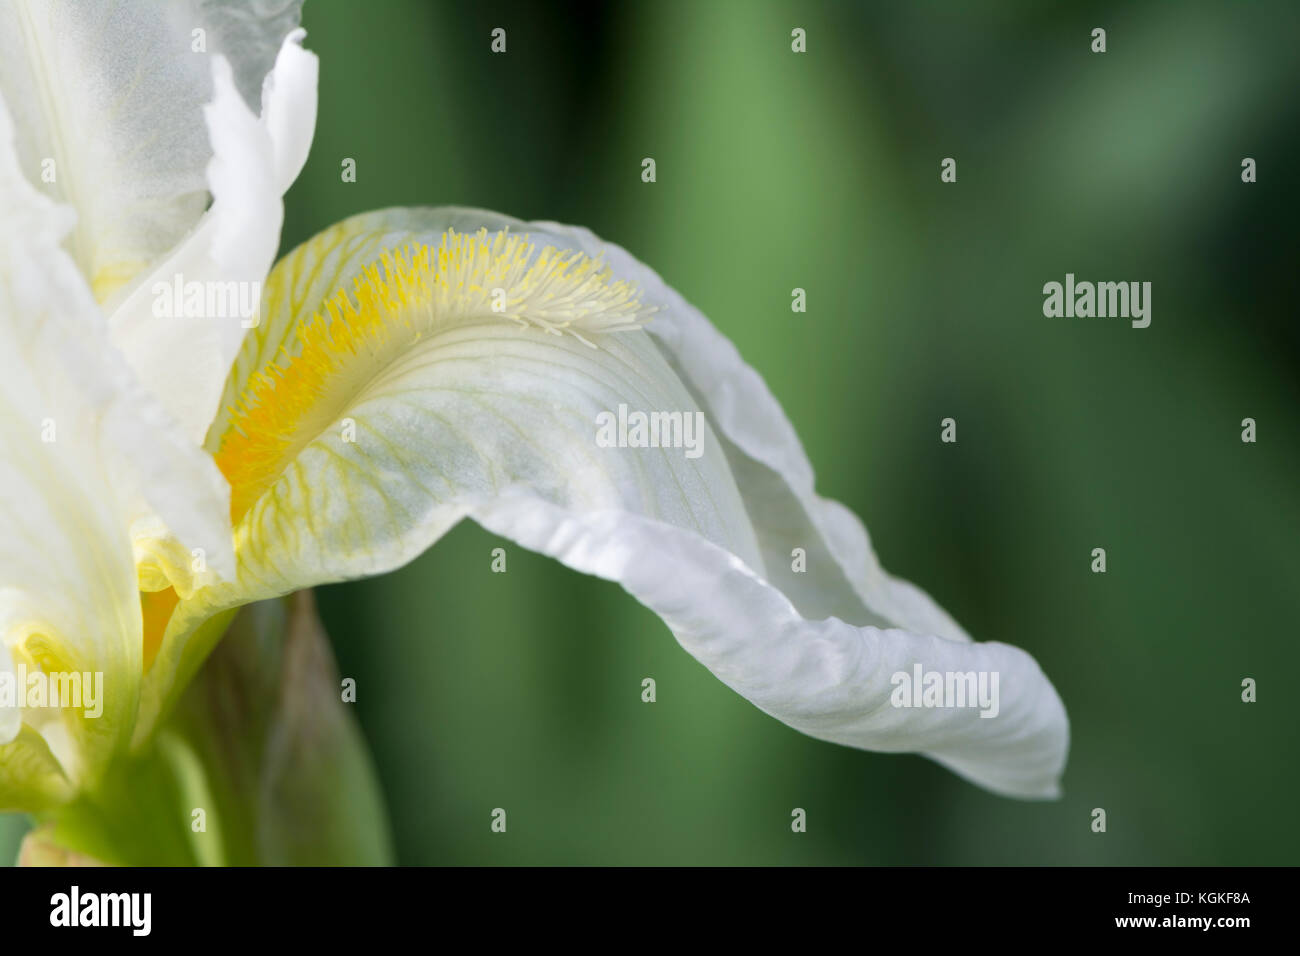 Partial view and main focus on the yellow beard and petal of a bearded white iris, possibly a Frequent Flyer Iris. - Stock Image